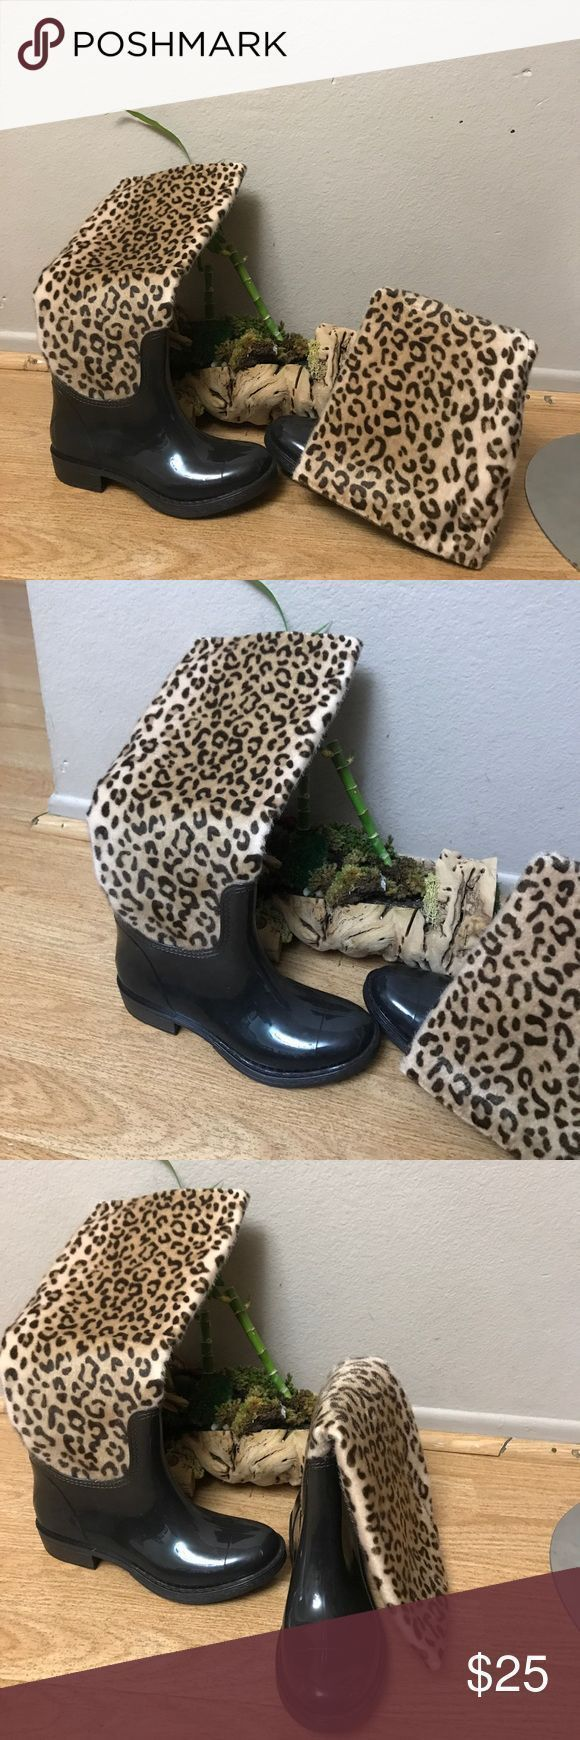 #Boots #leopard #ordinary #Print #Rain #Rainy Day Outfit ausgehen -  #Boots #leopard #ordinary #Print #Rain #Rainy Day Outfit ausgehen   - #ausgehen #boots #Day #FallOutfitscountry #FallOutfitsforkids #FallOutfitsforteenagers #FallOutfitsindie #FallOutfitsplaid #FallOutfitsrainyday #FallOutfitsscarf #FallOutfitsshorts #FallOutfitsvest #FallOutfitswithscarves #leopard #nycFallOutfits #ordinary #Outfit #Print #rain #Rainy #rainydayoutfit #Boots #leopard #ordinary #Print #Rain #Rainy Day Outfit aus #rainydayoutfitforschool